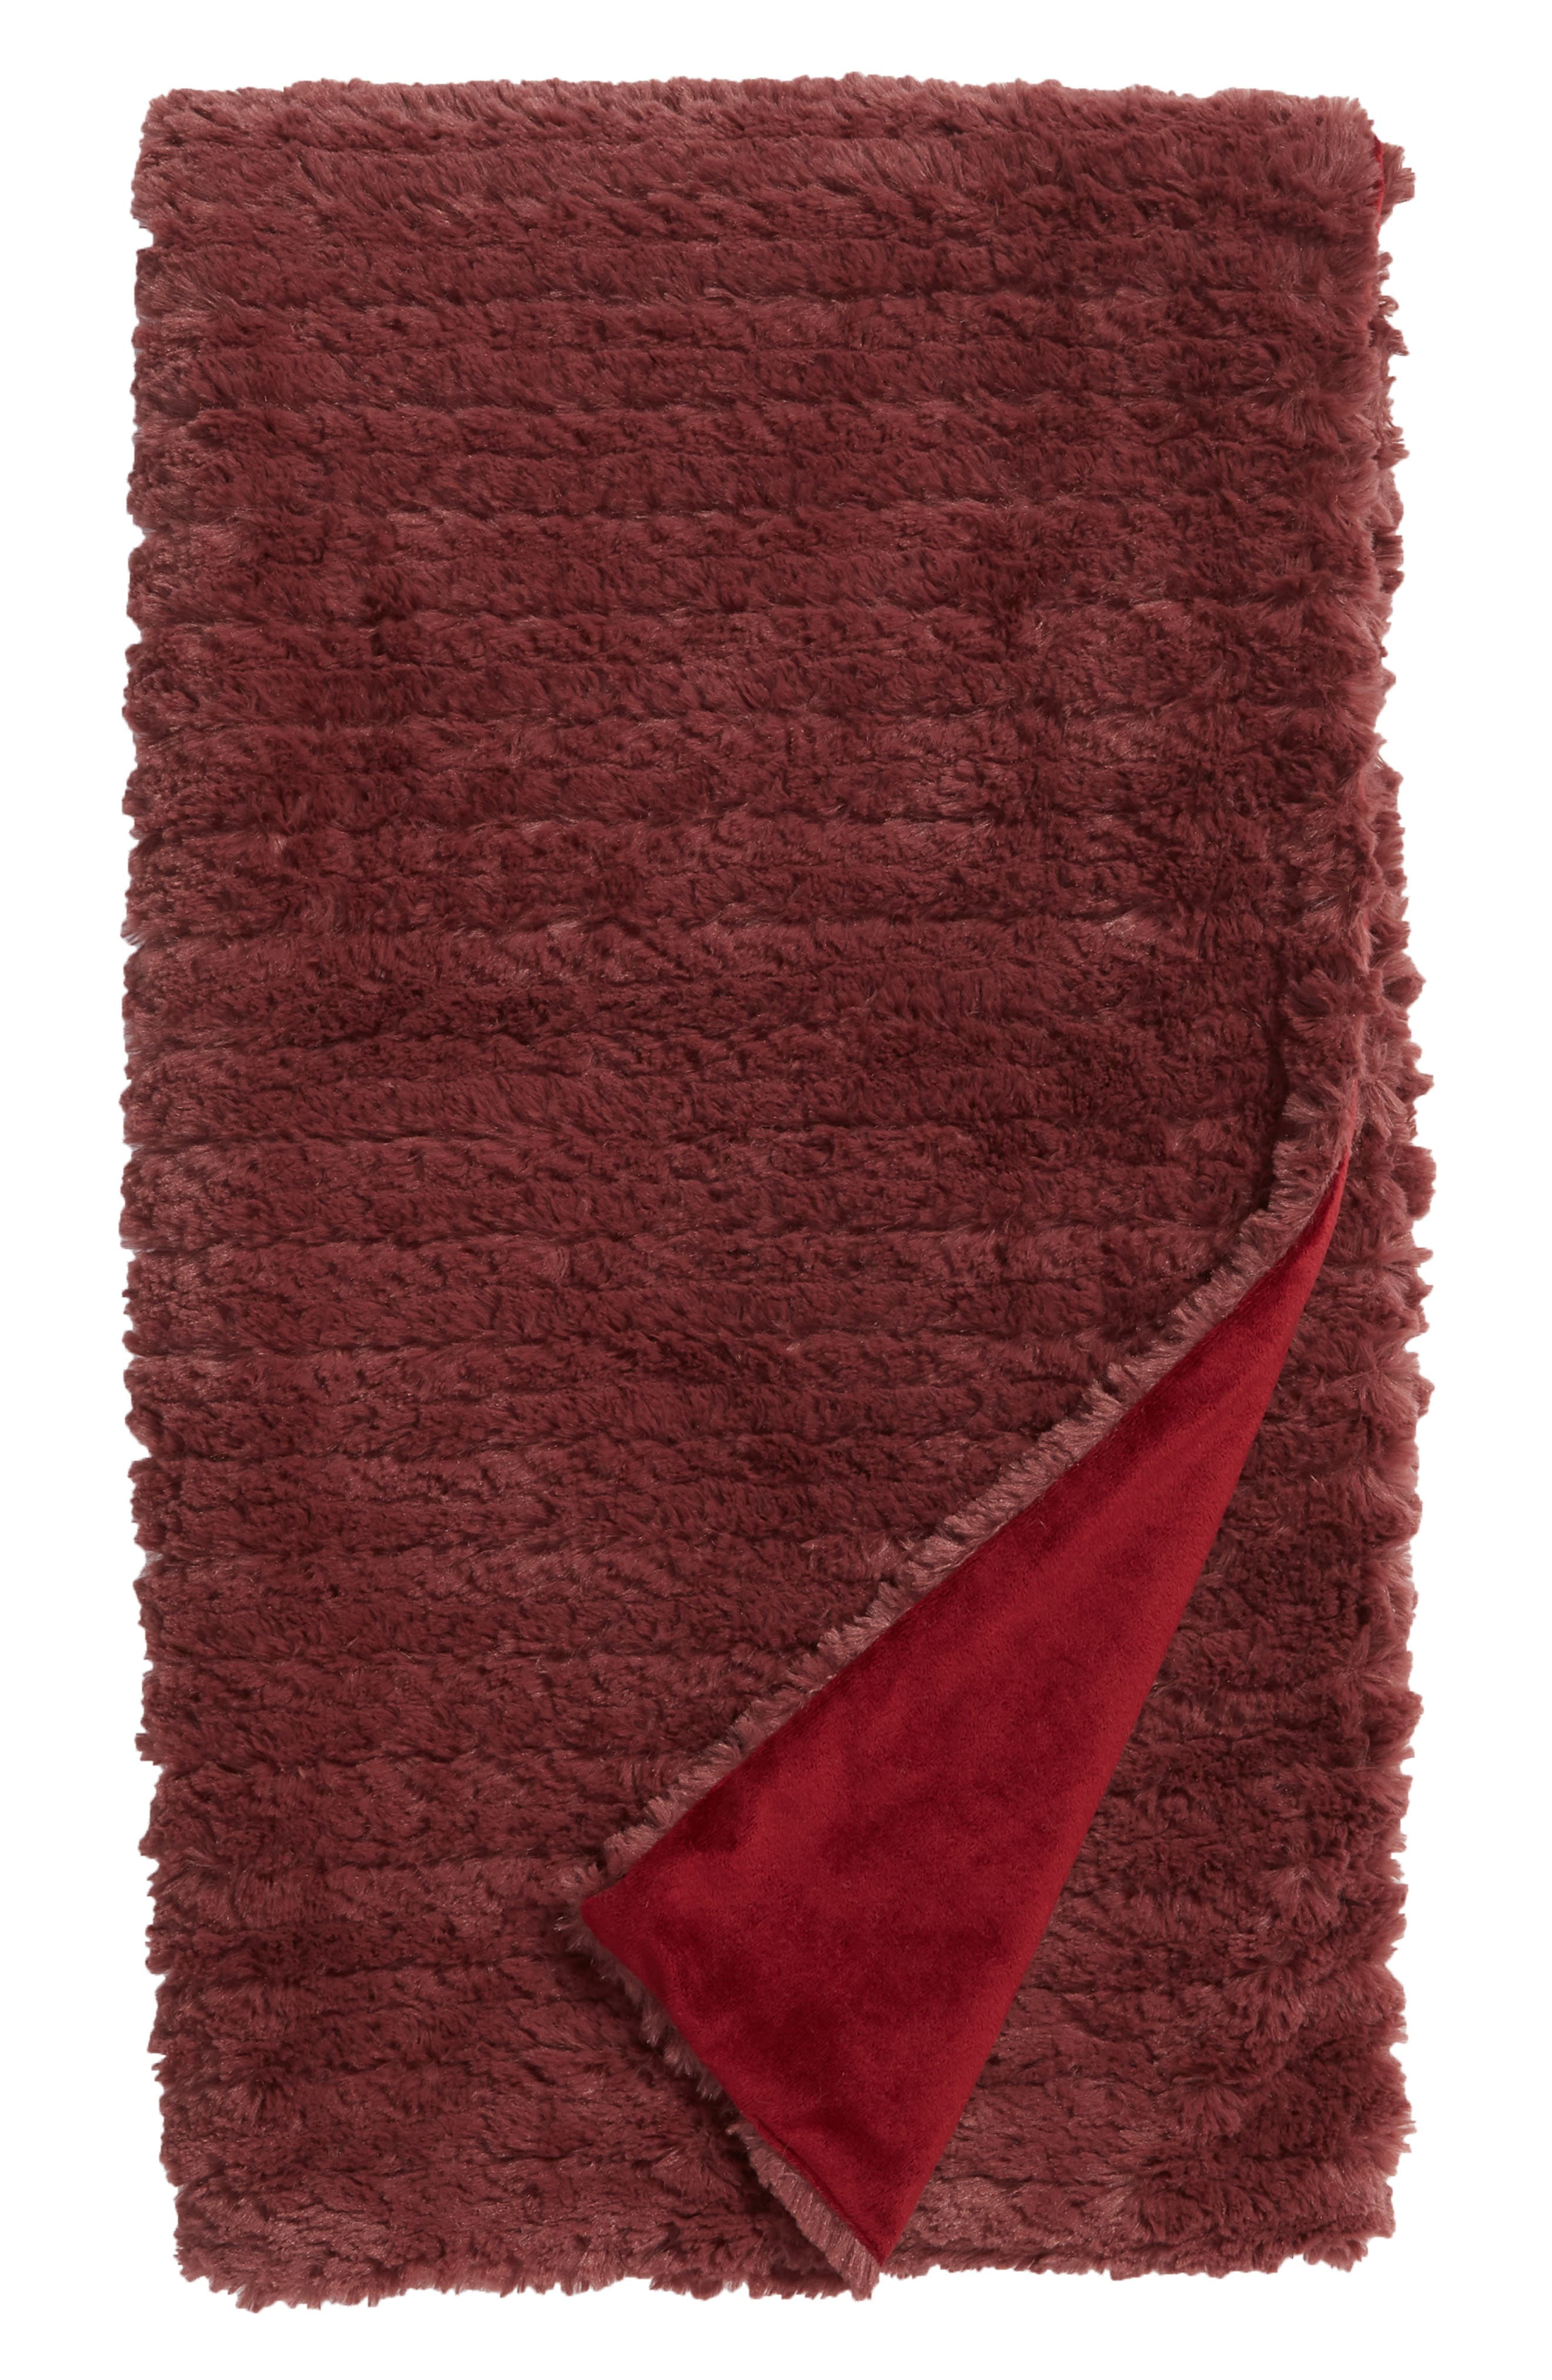 NORDSTROM AT HOME, Faux Fur Throw Blanket, Main thumbnail 1, color, BURGUNDY GINGER